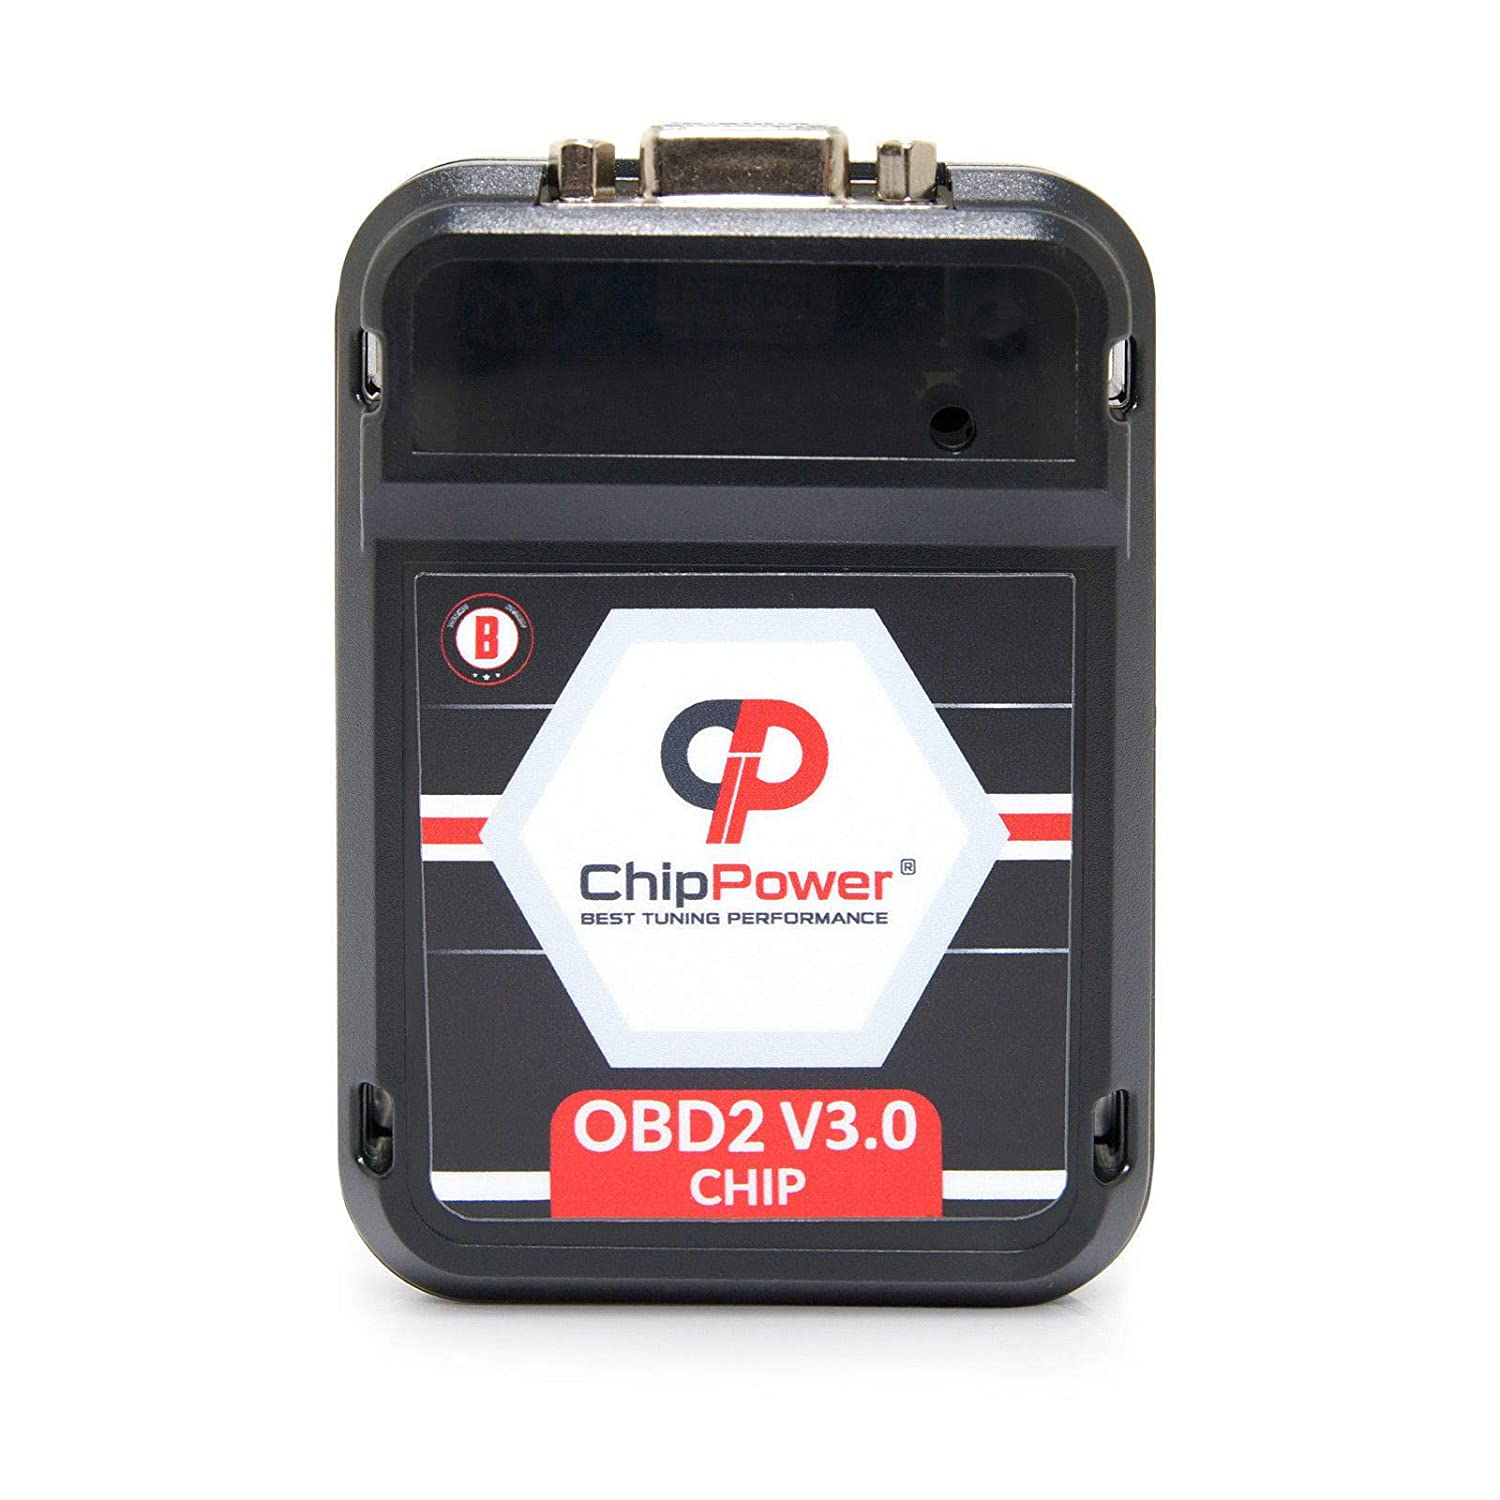 Chip de Potencia ChipPower OBD2 v3 para 1 118i 143CV E81//E87 Tuning Box Gasolina